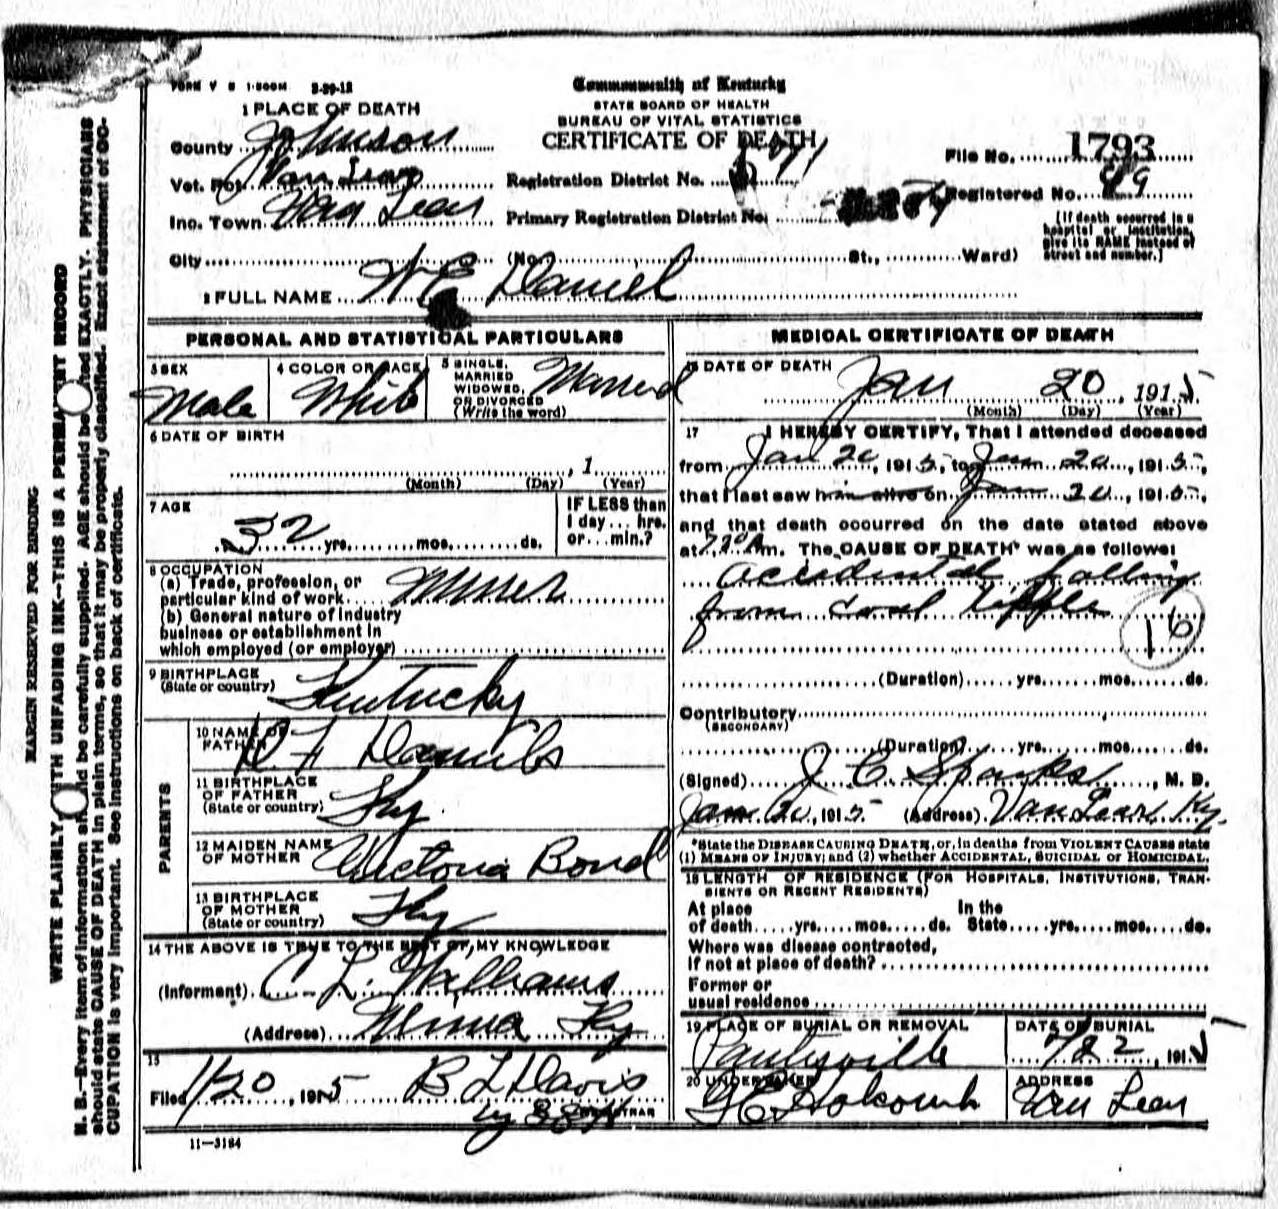 william e daniel and sarah cathern wright Thomas Edison Funeral maybe the later one was a corrected death certificate i don t know